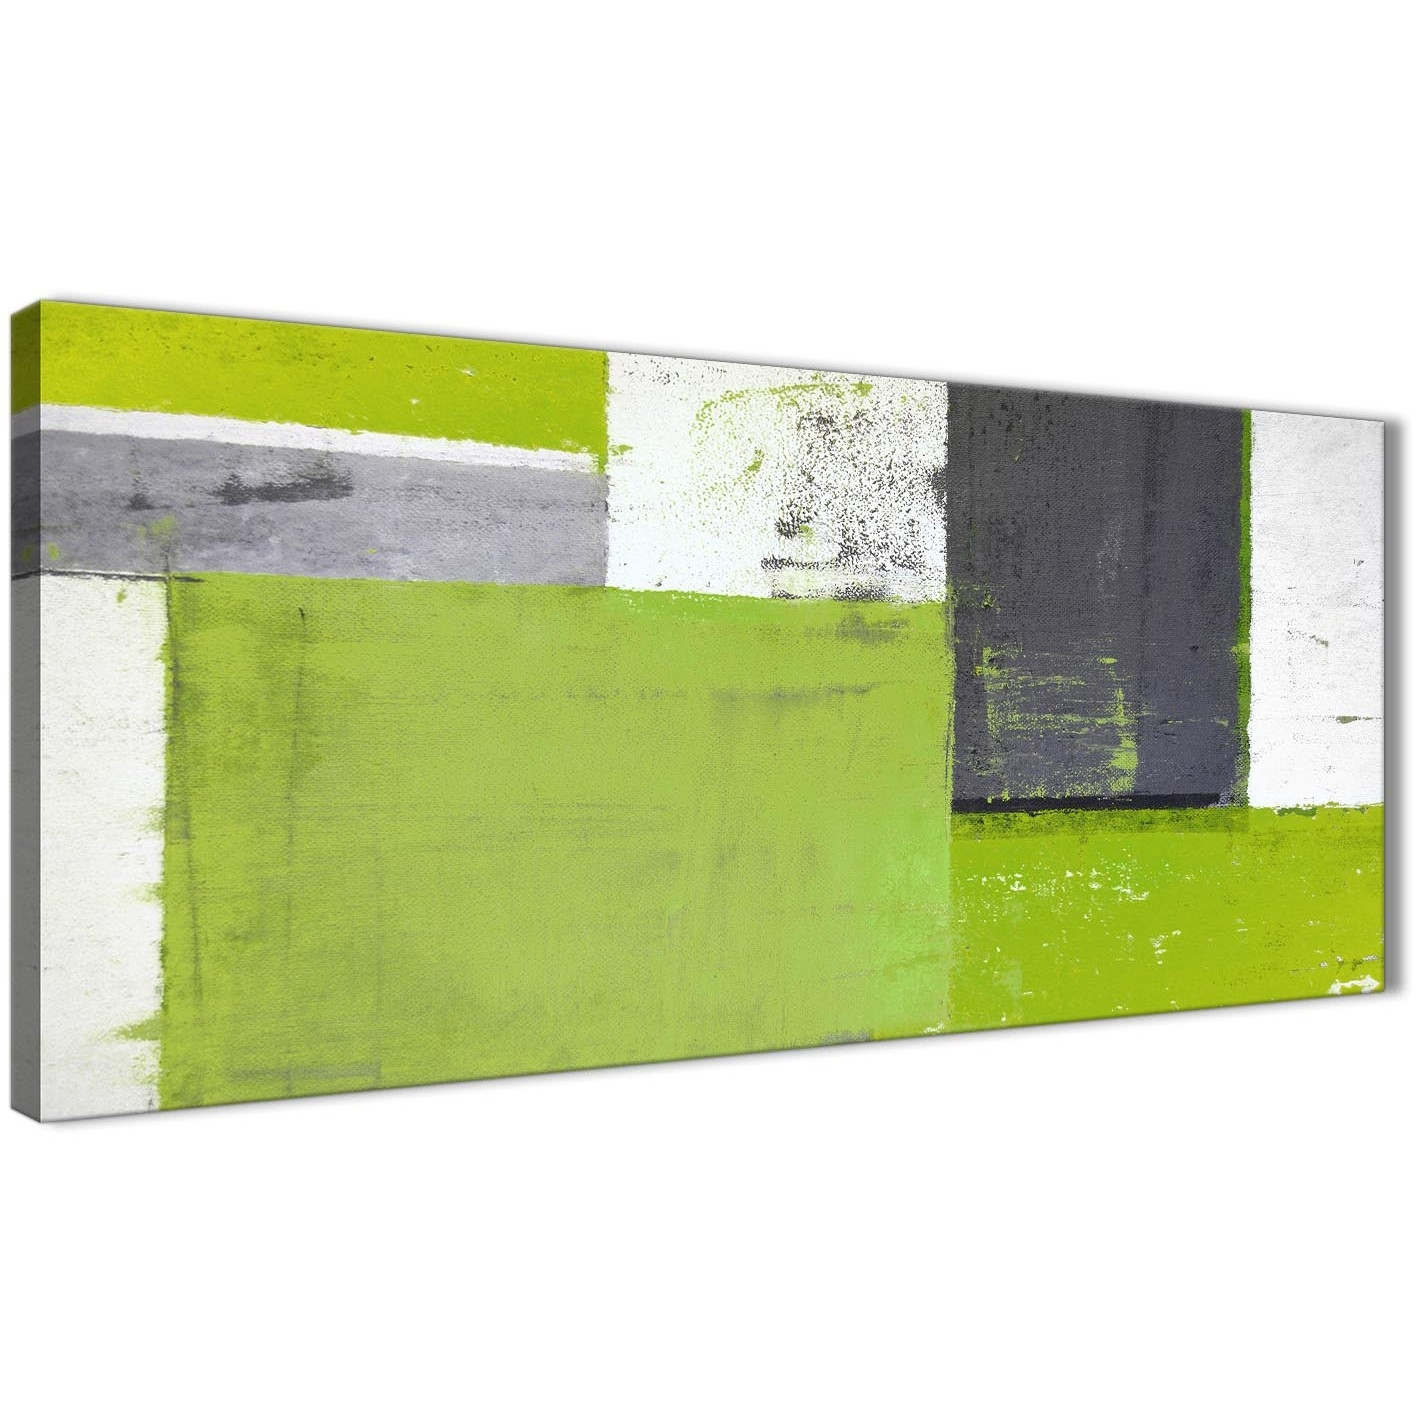 Lime Green Grey Abstract Painting Canvas Wall Art Print – Modern With Most Up To Date Green Abstract Wall Art (View 14 of 20)